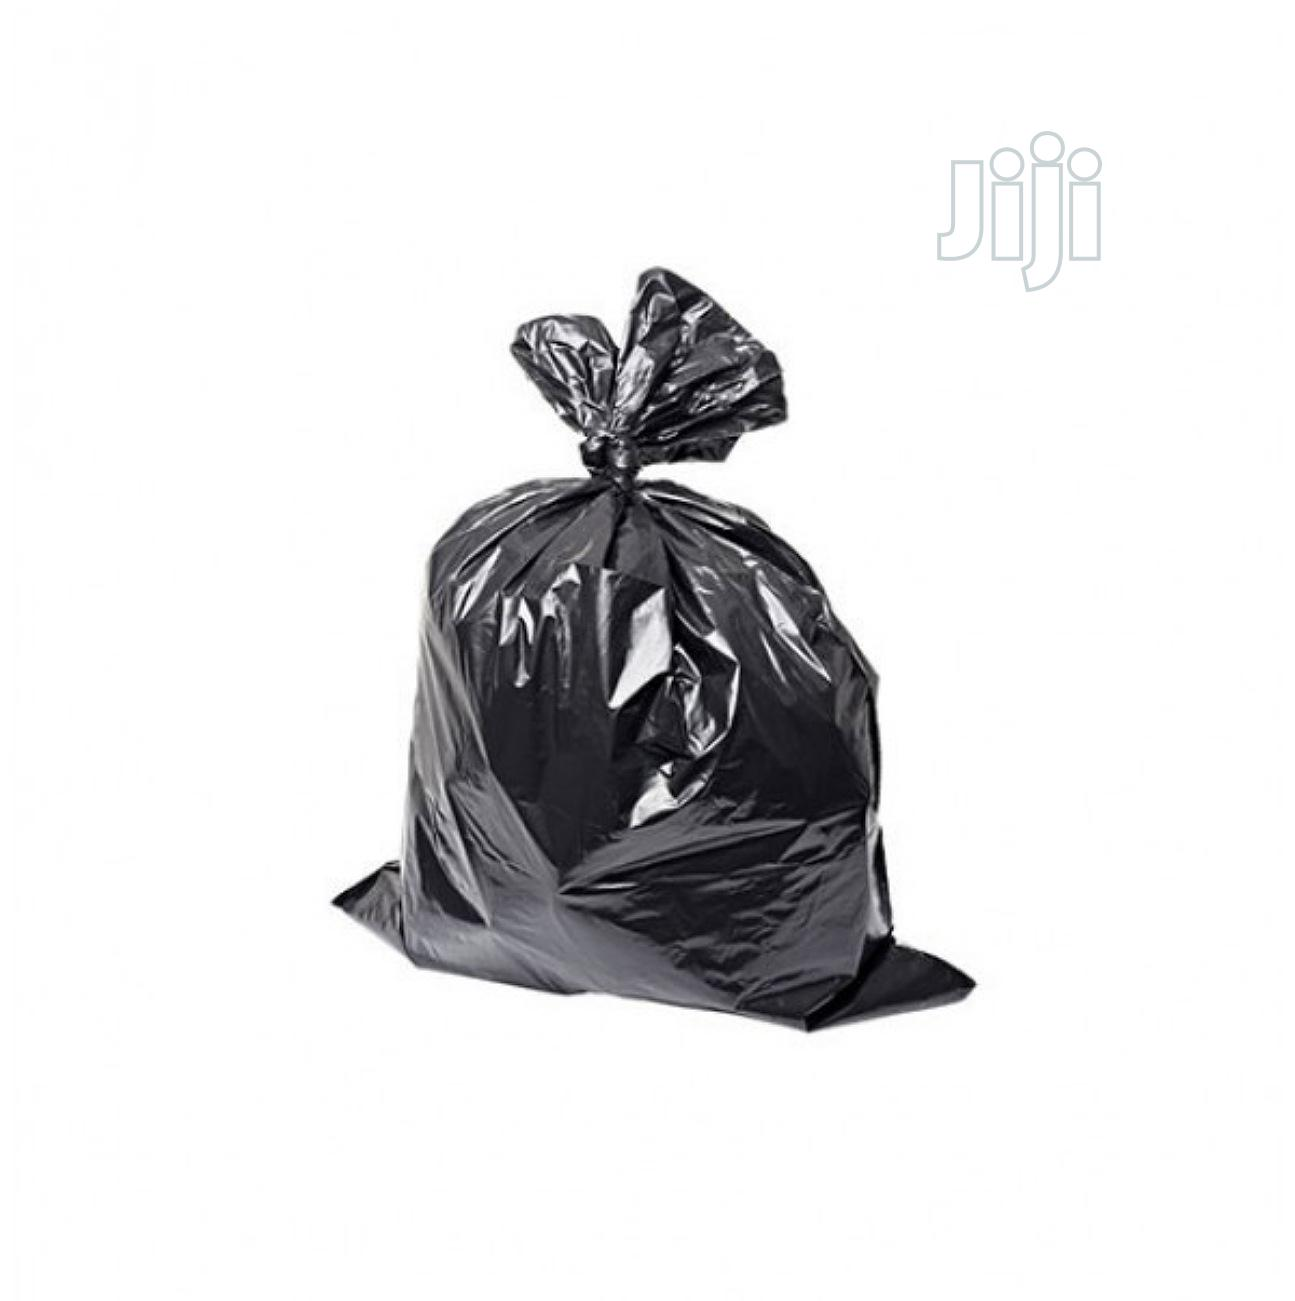 Disposable Refuse/ Waste Bin Nylon - 3 Pieces | Home Accessories for sale in Ikeja, Lagos State, Nigeria